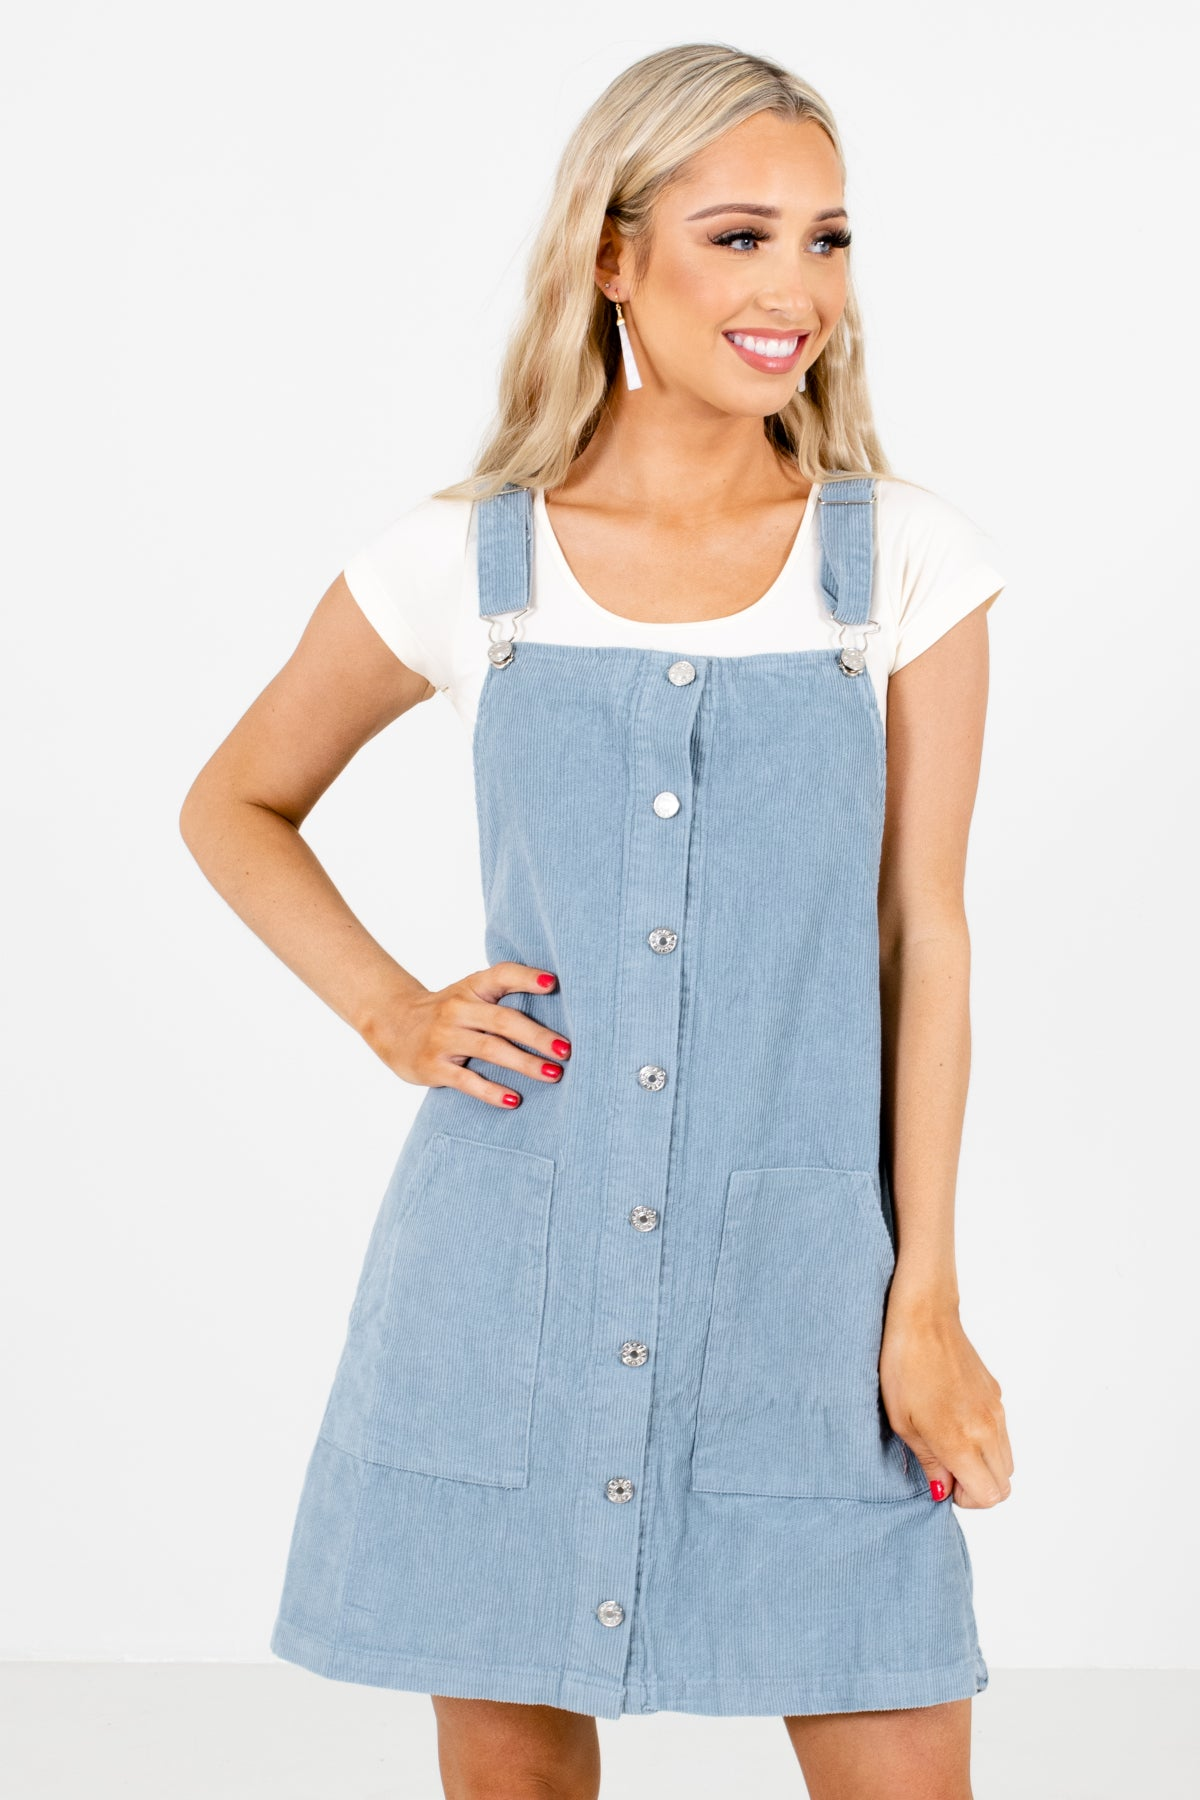 Blue Pinafore Style Boutique Mini Dresses for Women